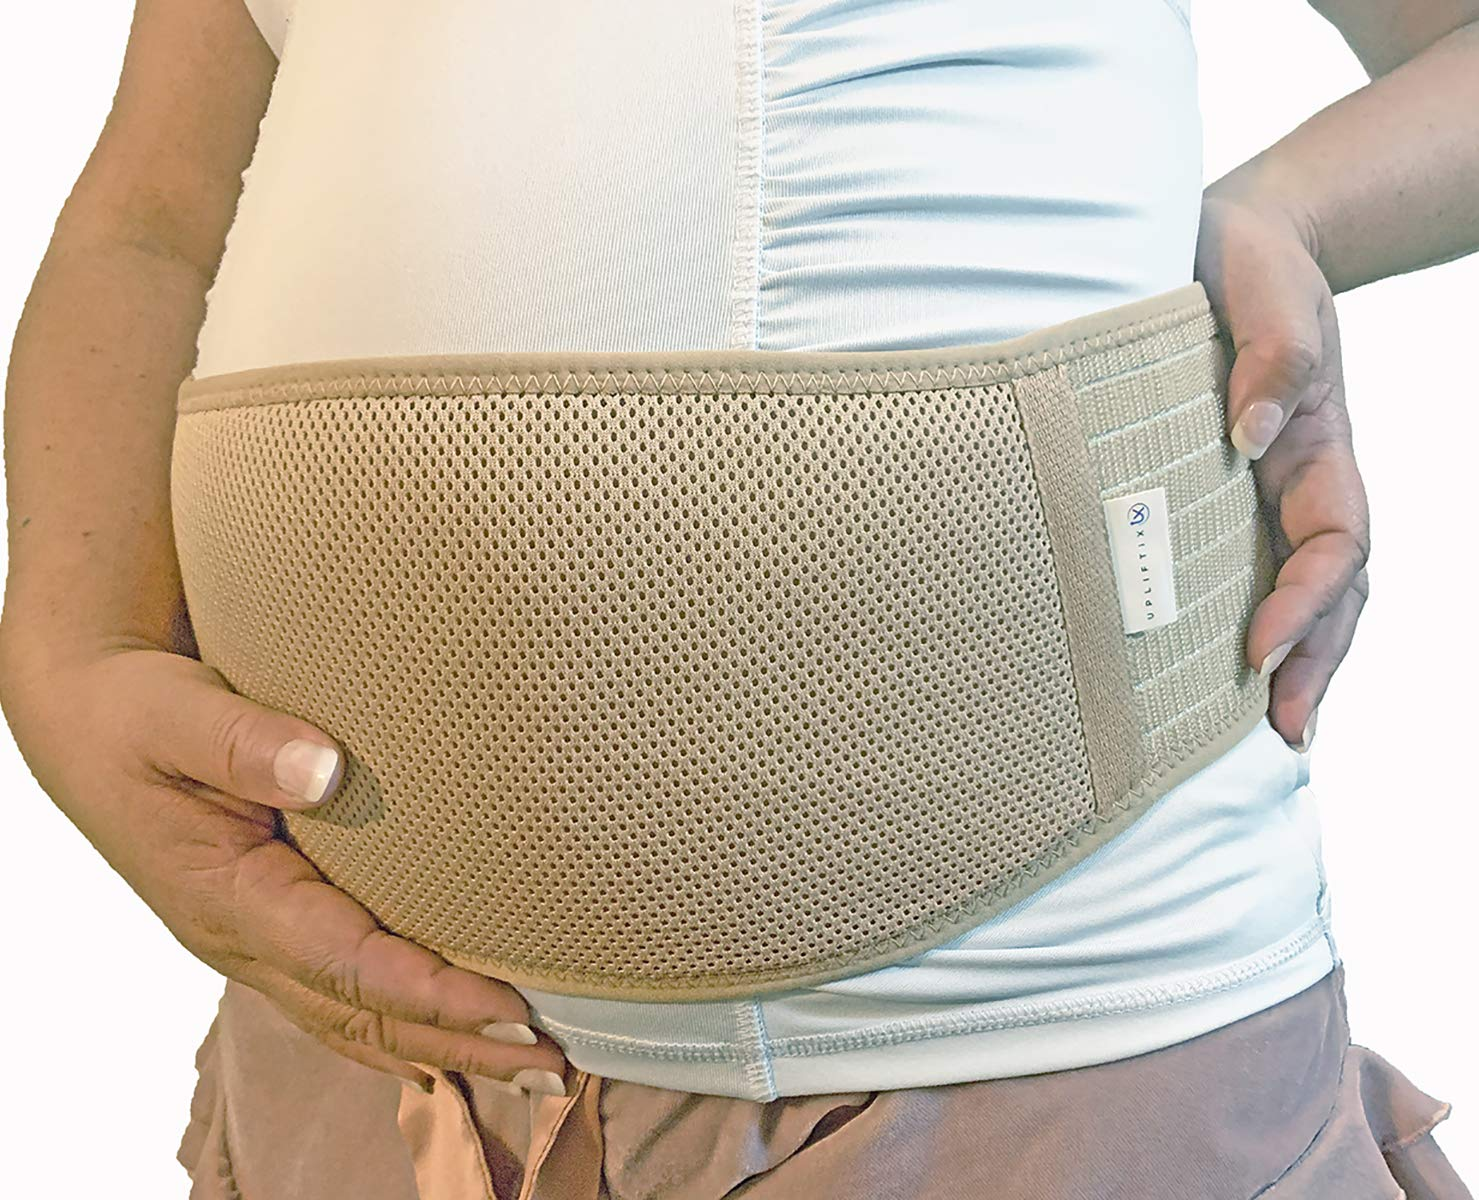 Relieves Pain During Pregnancy Postpartum Compression Maternity Belt by Upliftix Breathable and Comfortable Soft Belly Band with Adjustable Strap- Back Hip and Pelvic Support Brace